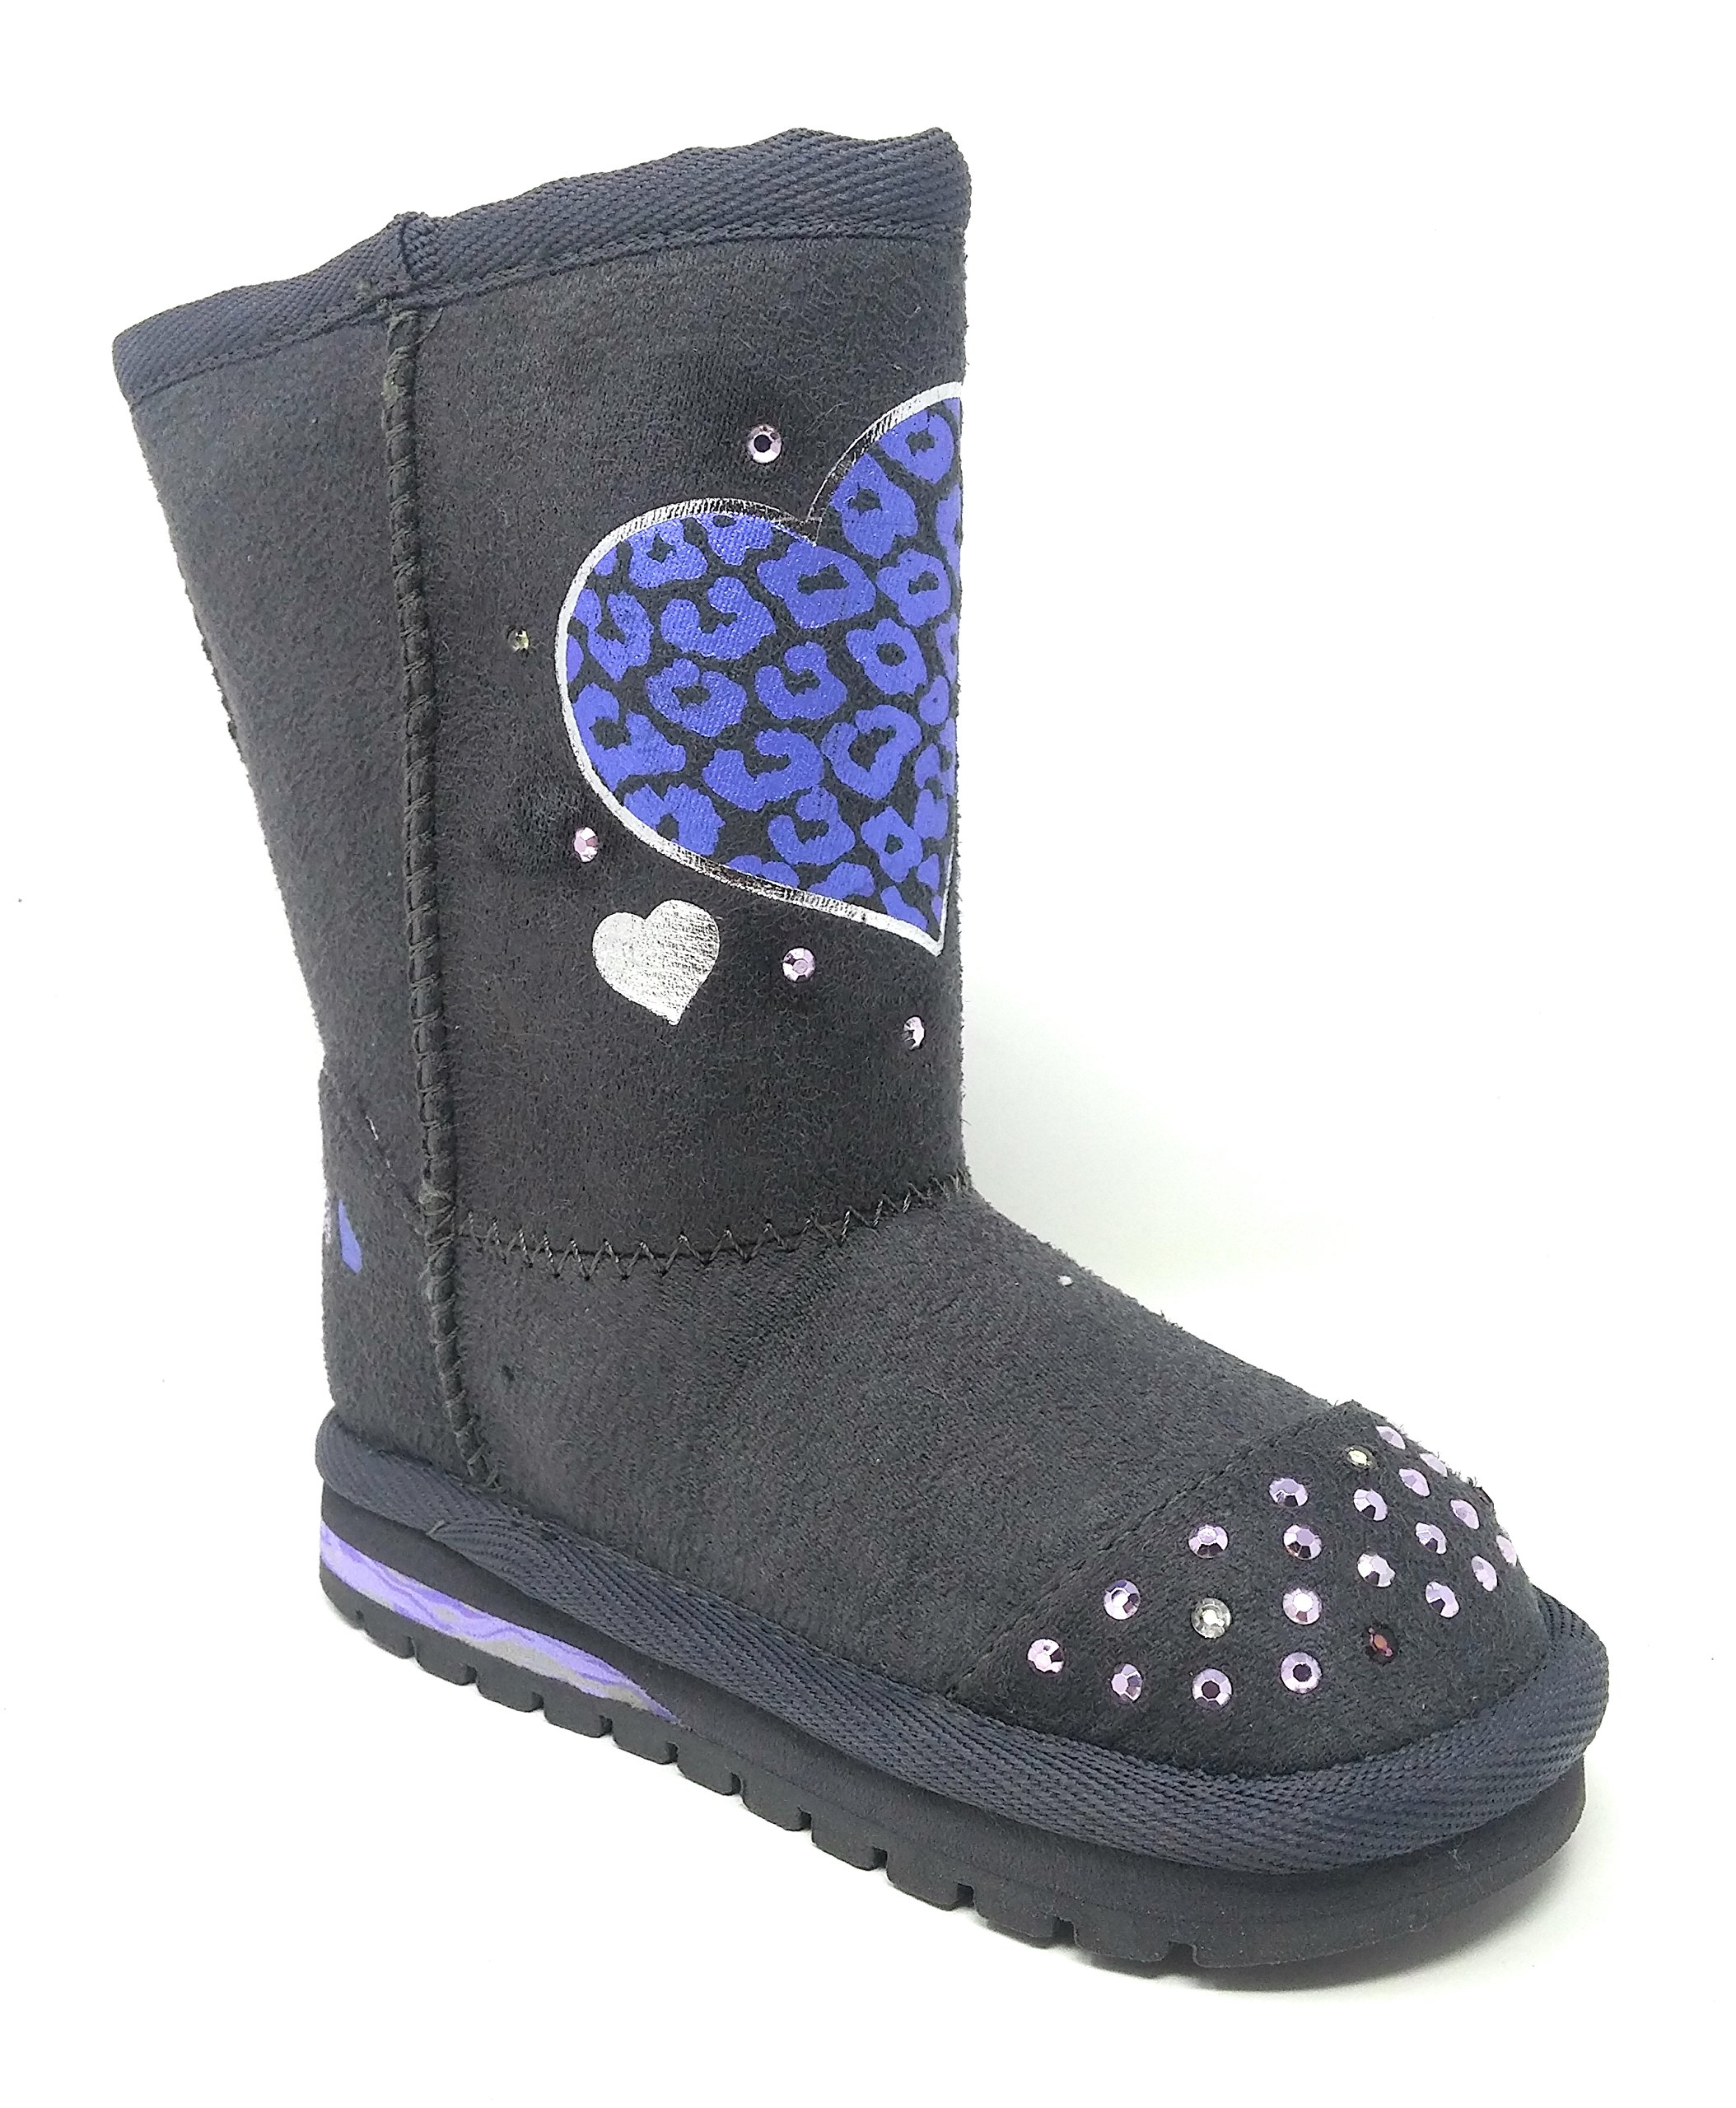 Skechers Girls Light-Up Boots Keepsakes Love Light Size 8